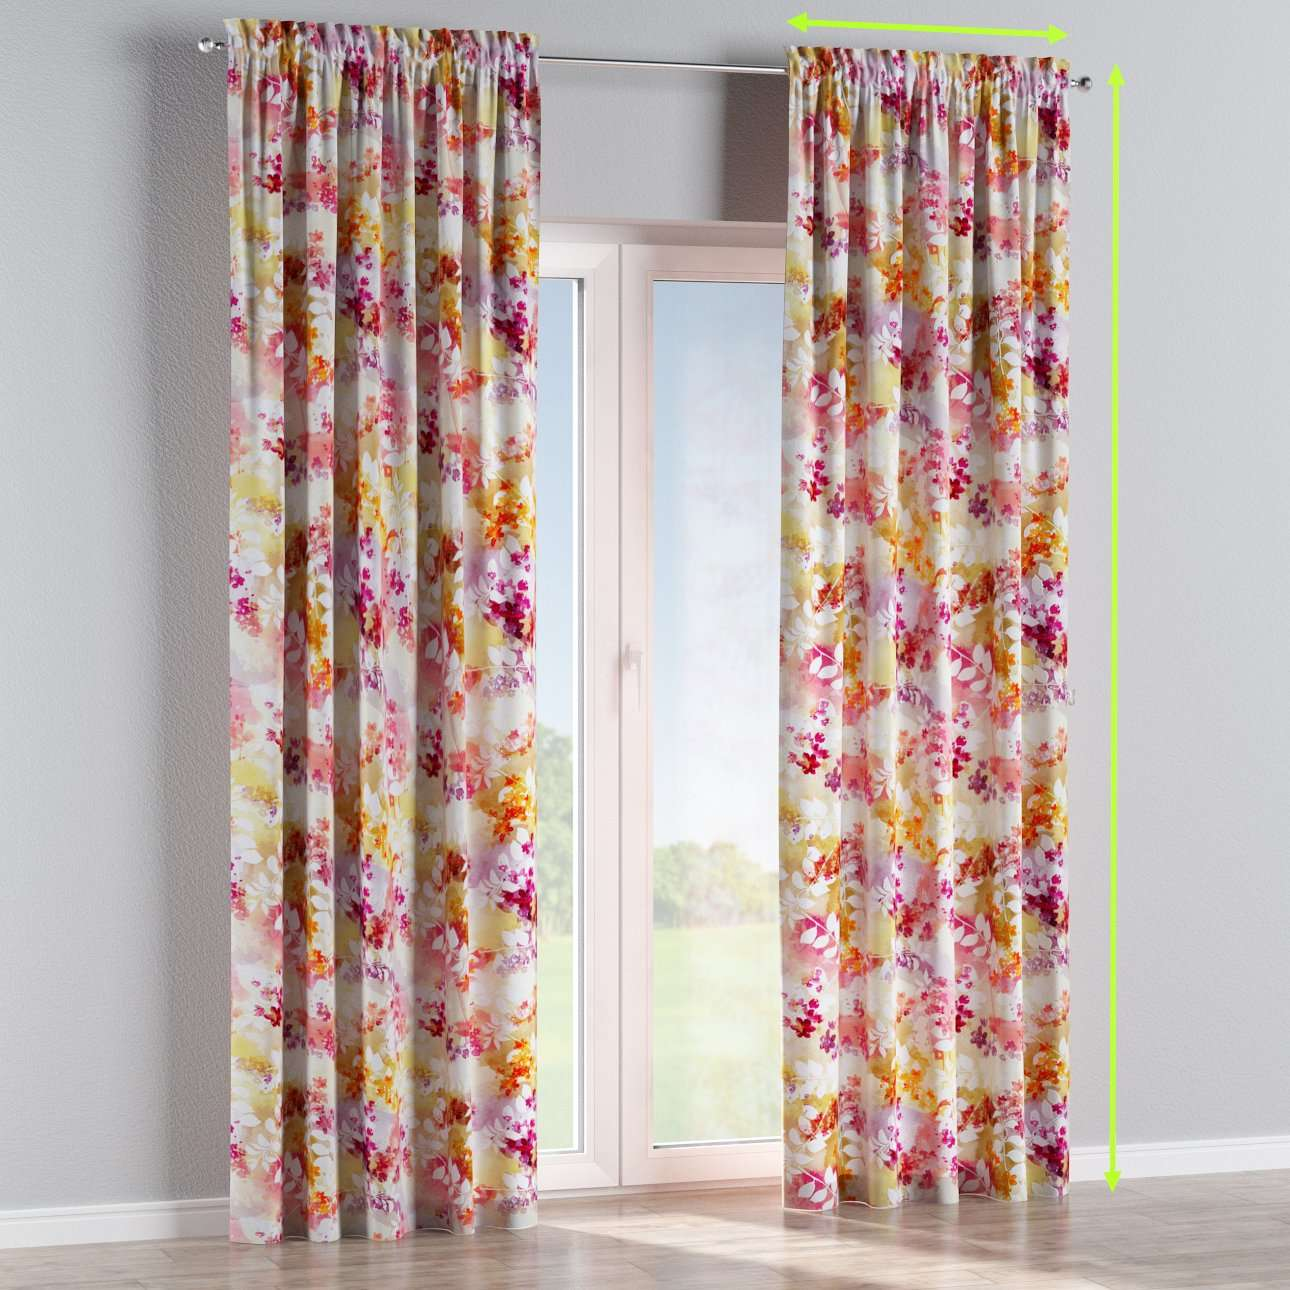 Slot and frill curtains in collection Monet, fabric: 140-05